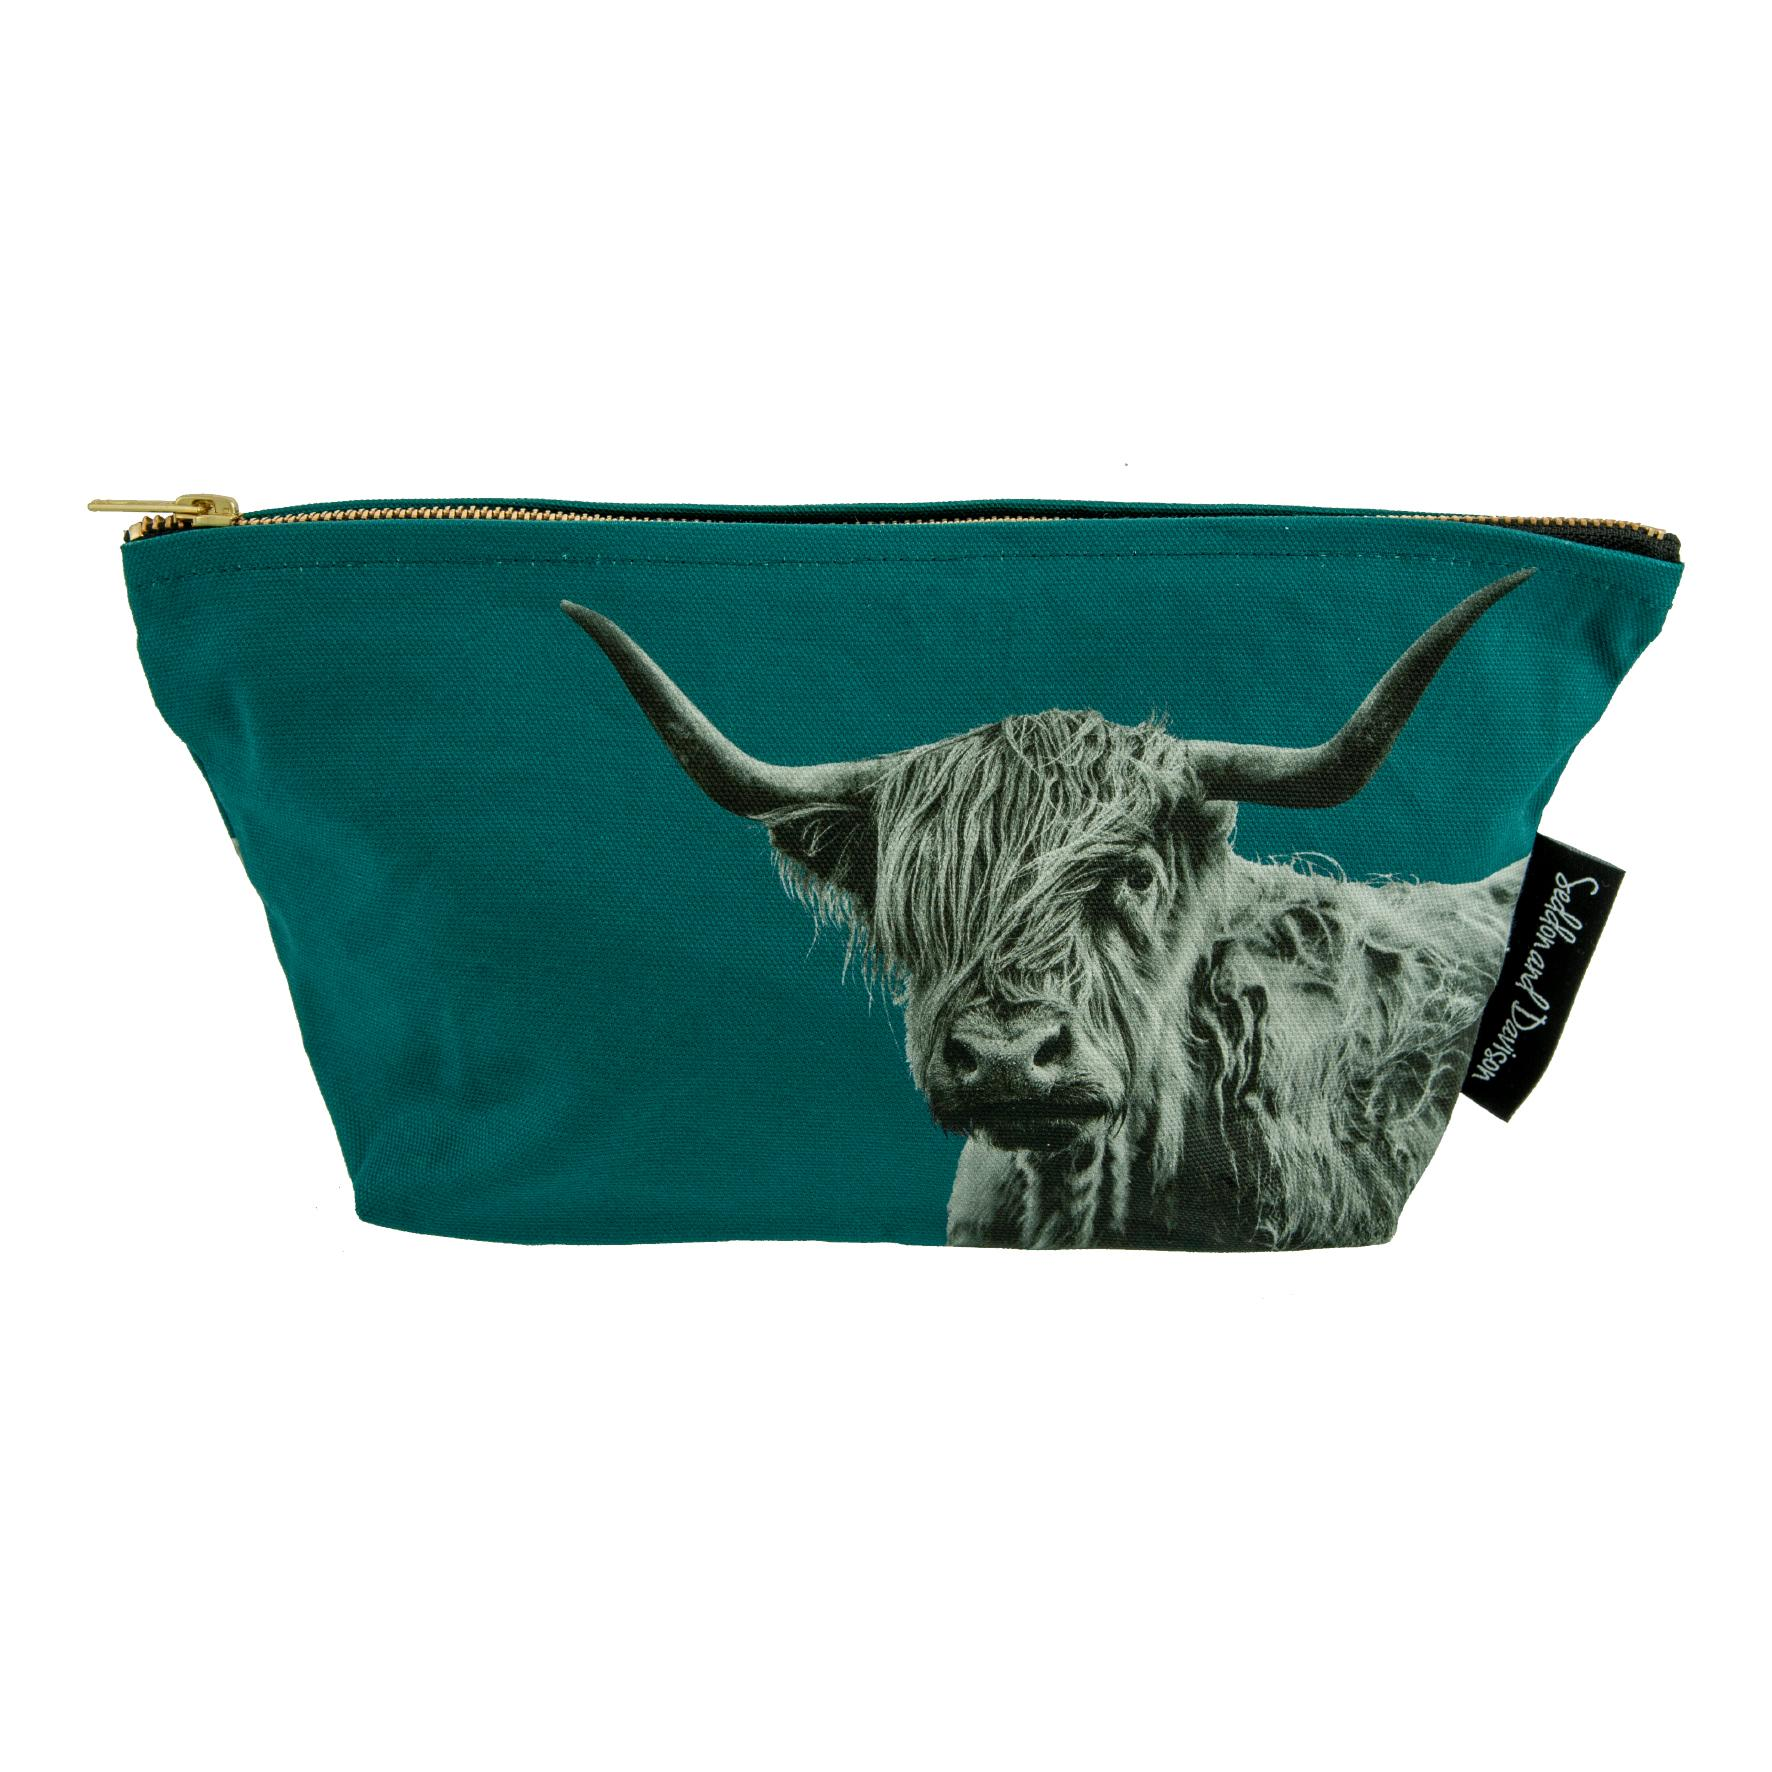 Shaggy Highland Cow Wash Bag on Teal